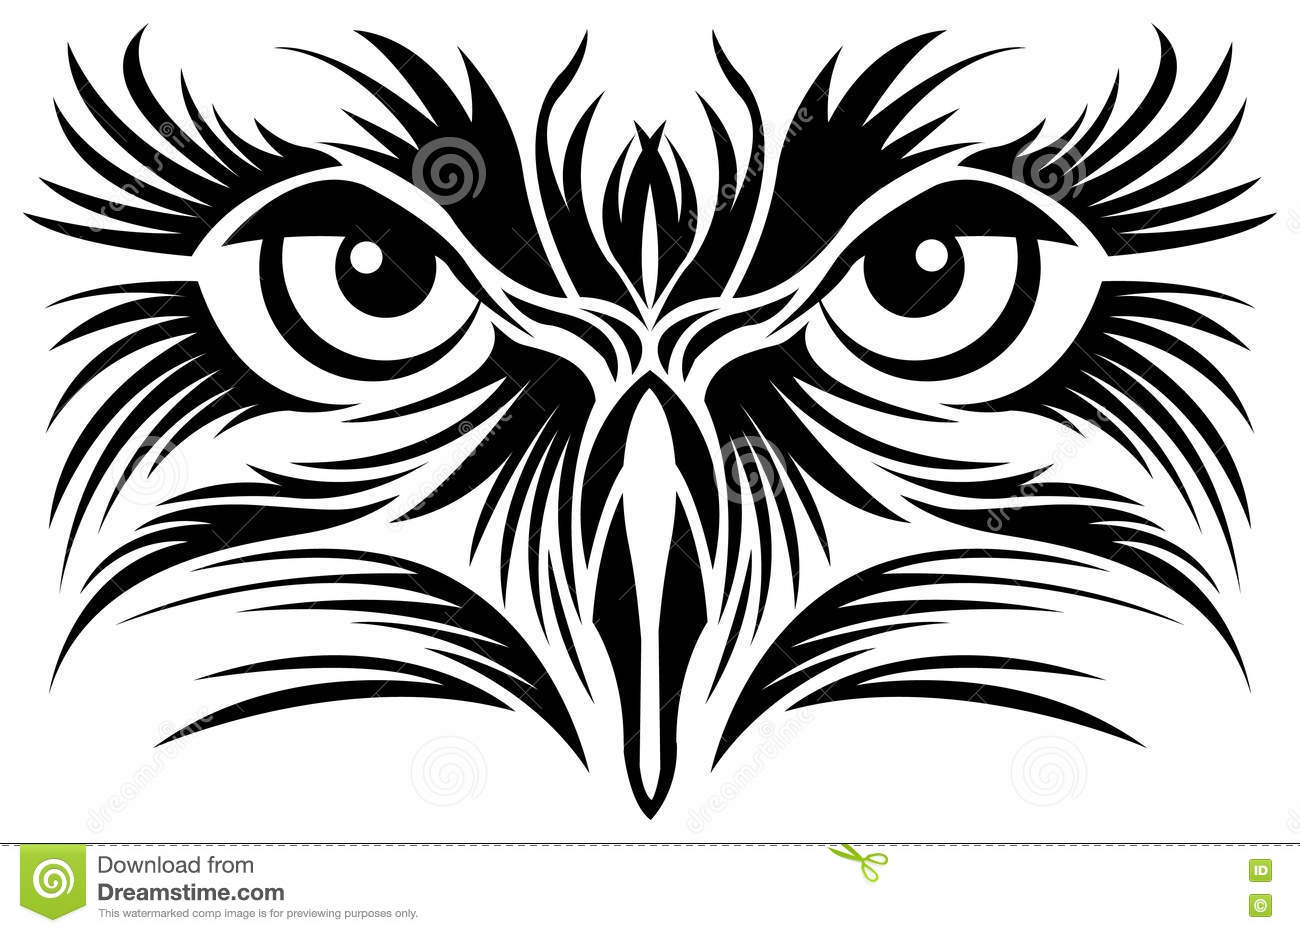 Line Art Design Free Download : Eagle eyes tattoo stock vector. illustration of printing 75036980